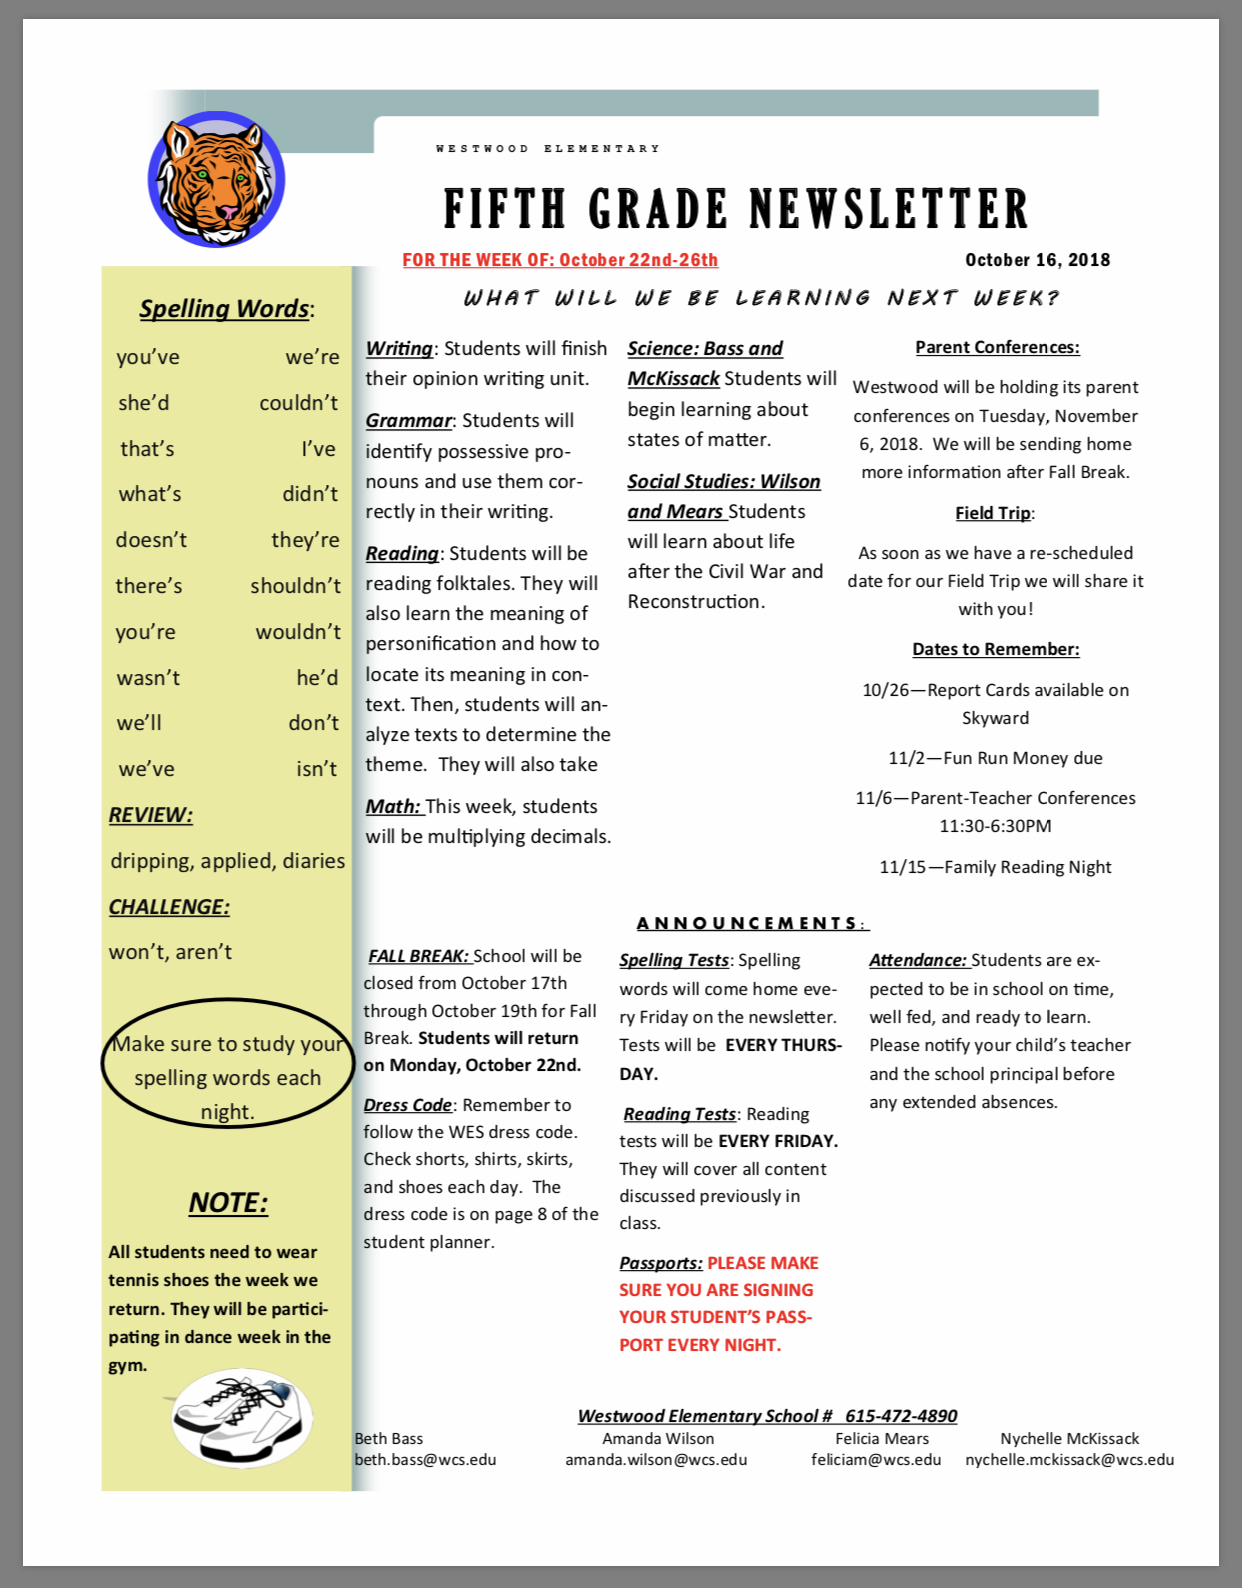 5th Grade Newsletter paper copy in office